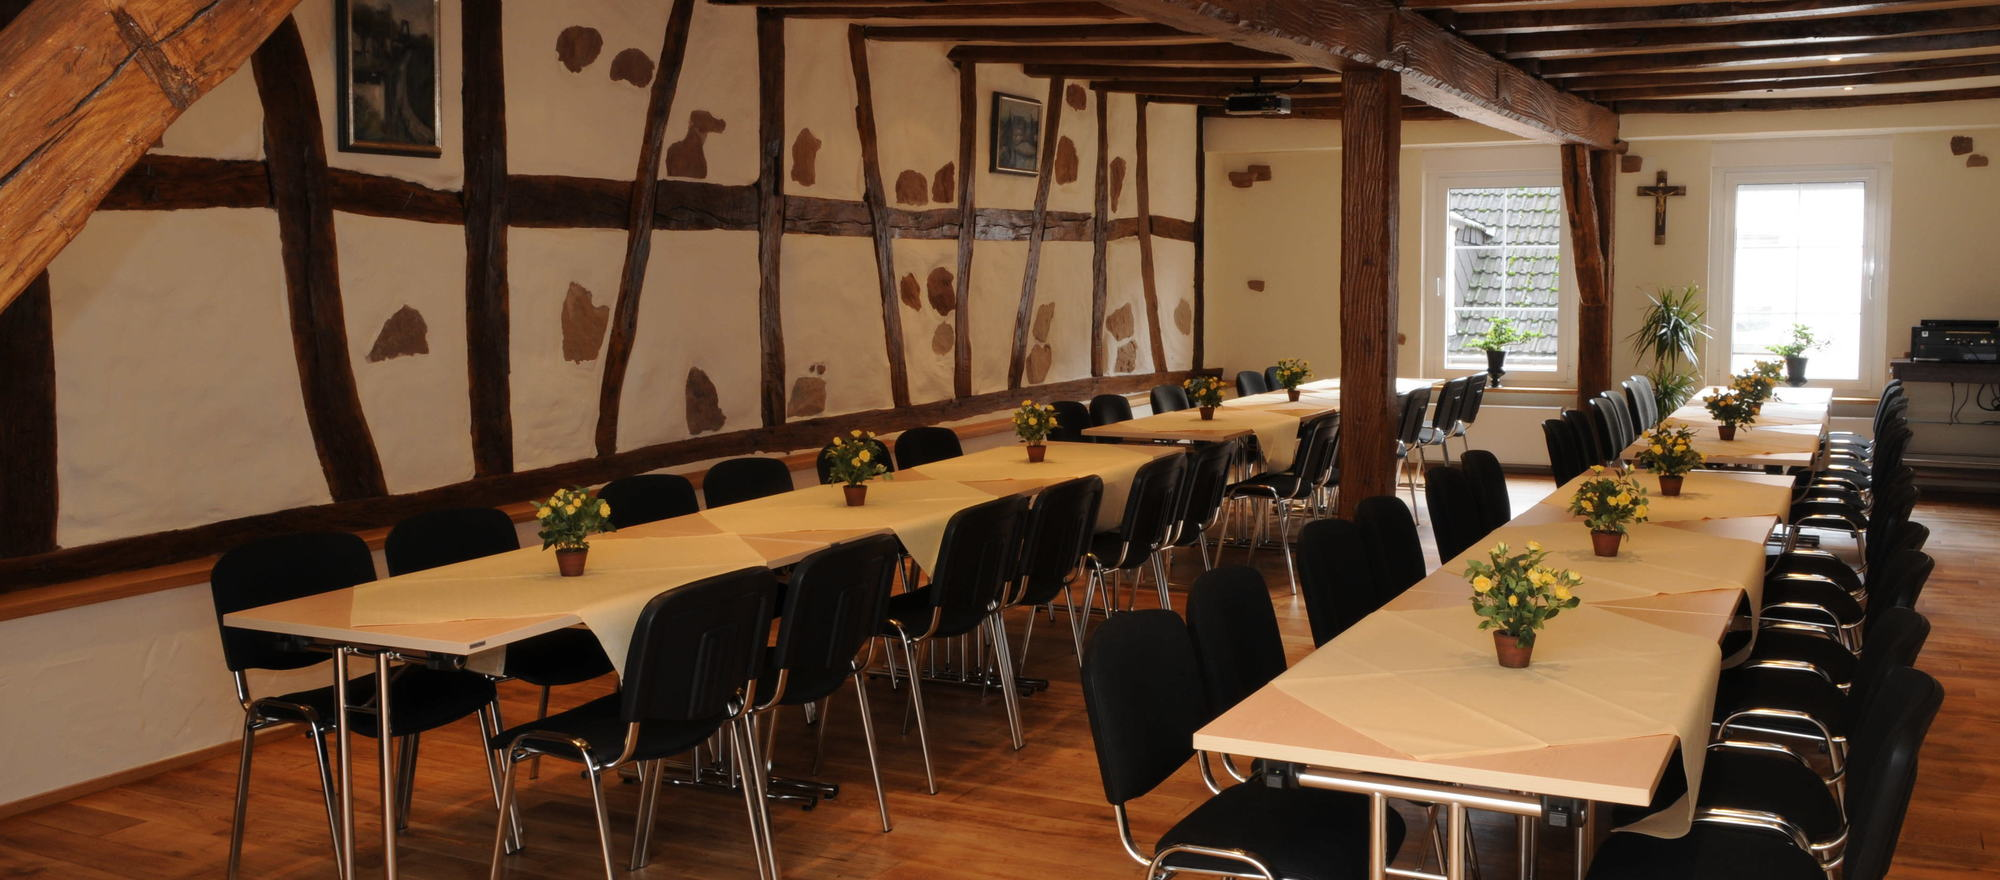 Meeting room in the Ringhotel Posthof garni, 3-star superior hotel in Saarlouis